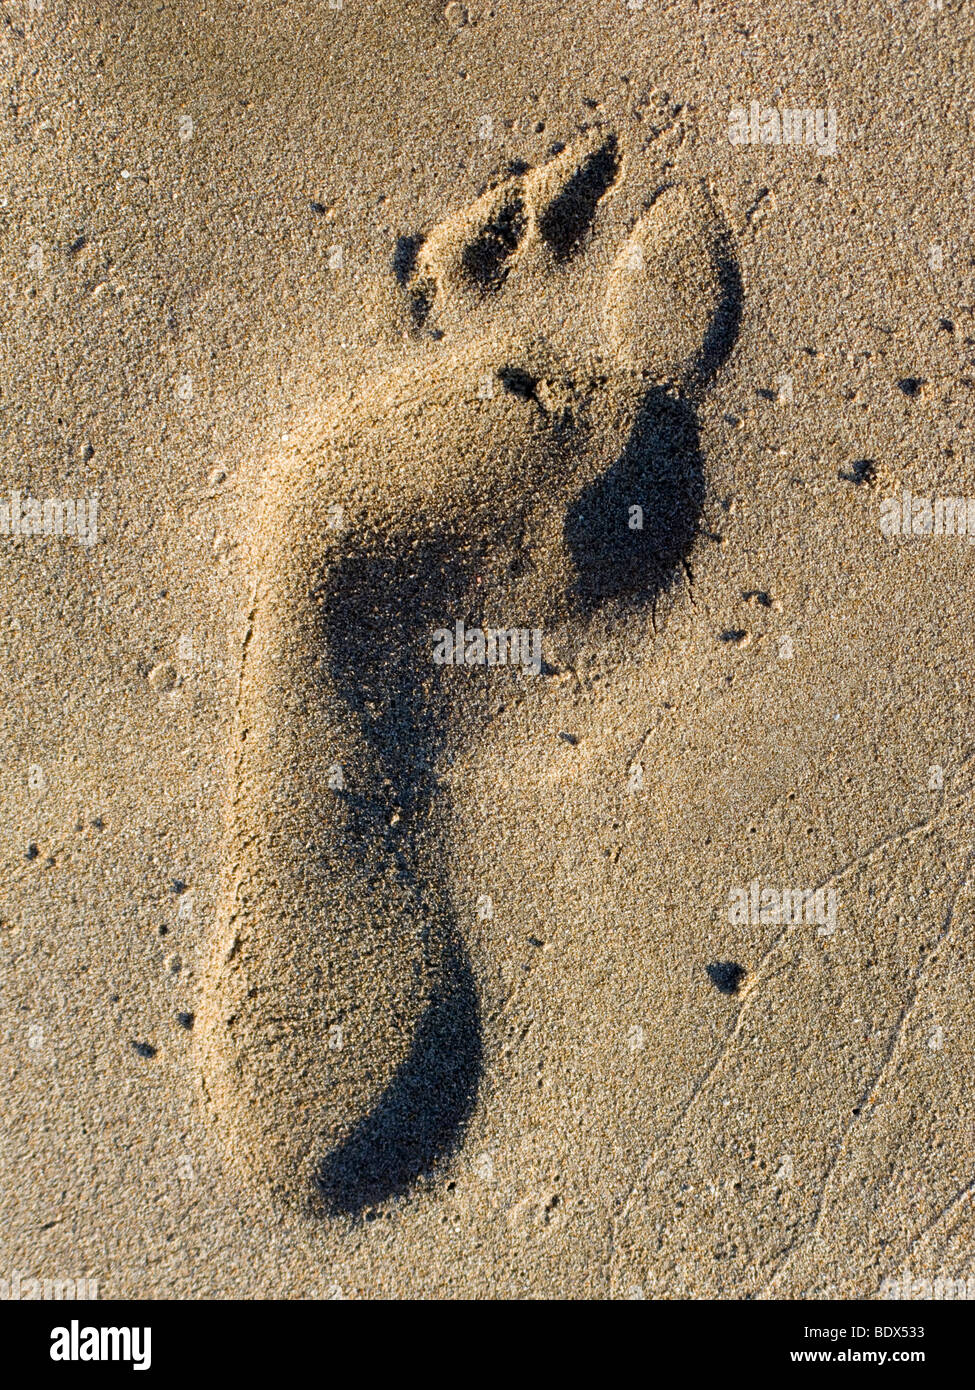 Footprint in the sand in Fig Tree Bay, Protaras, Cyprus. - Stock Image